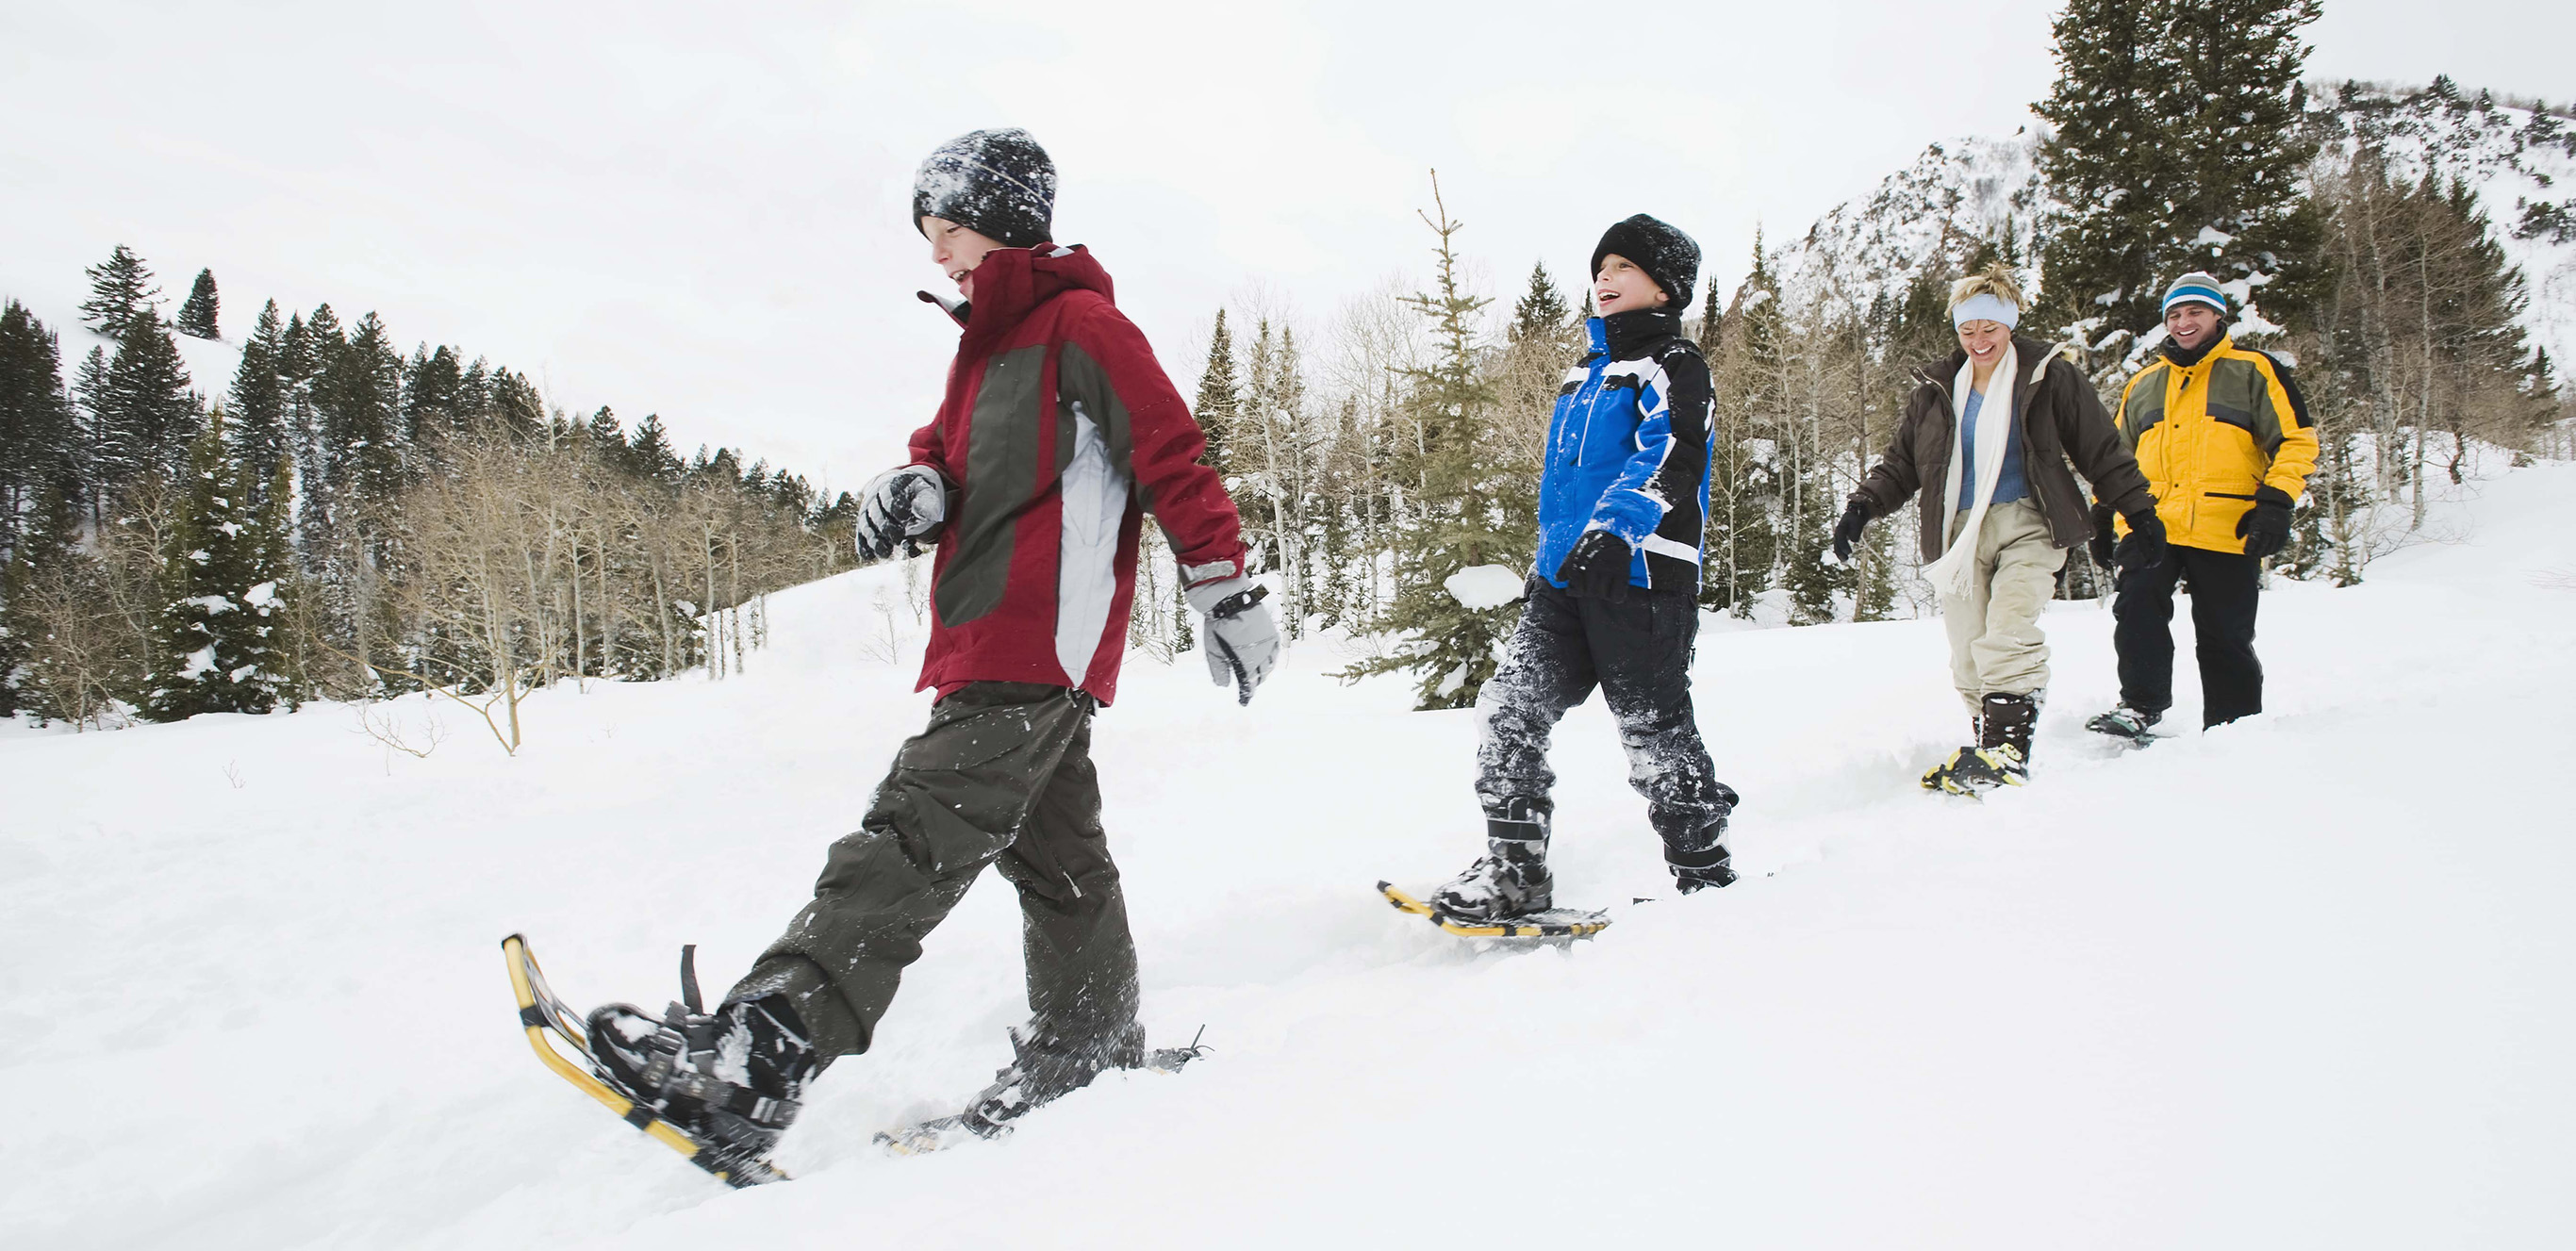 Winter Adventure for Teens with Diabetes